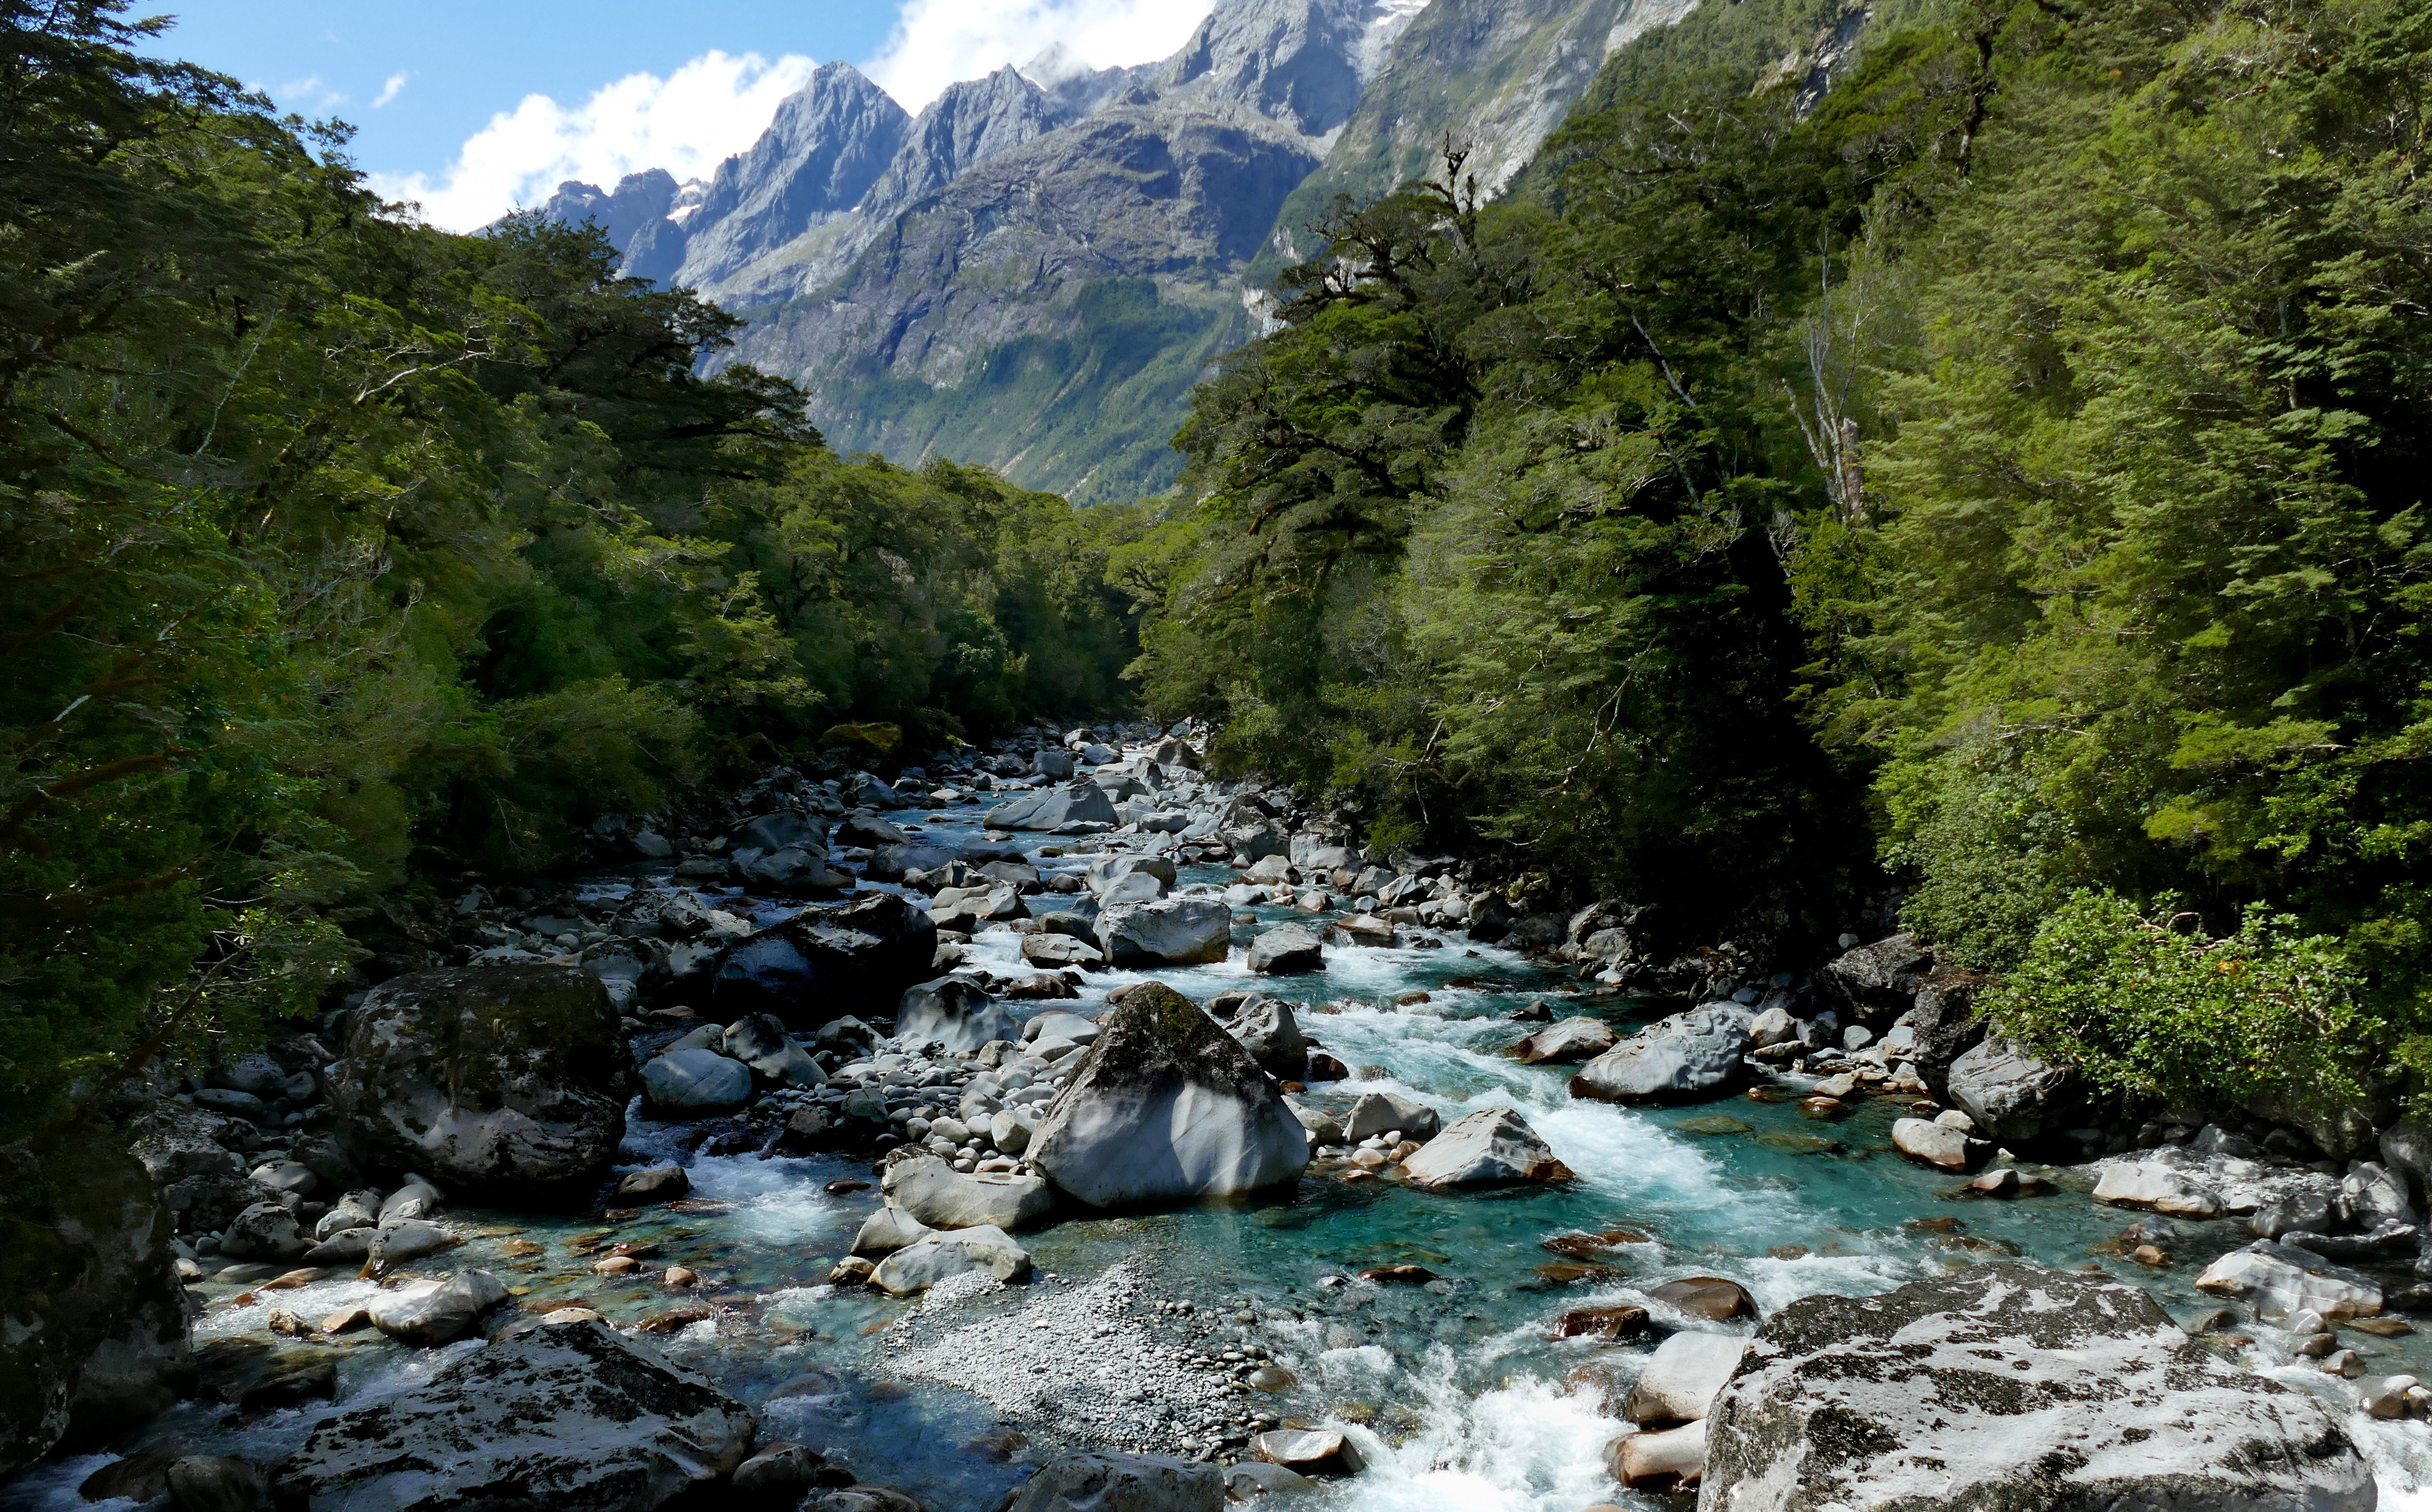 Free download high resolution image - free image free photo free stock image public domain picture -Tutuko River Fiordland National Park